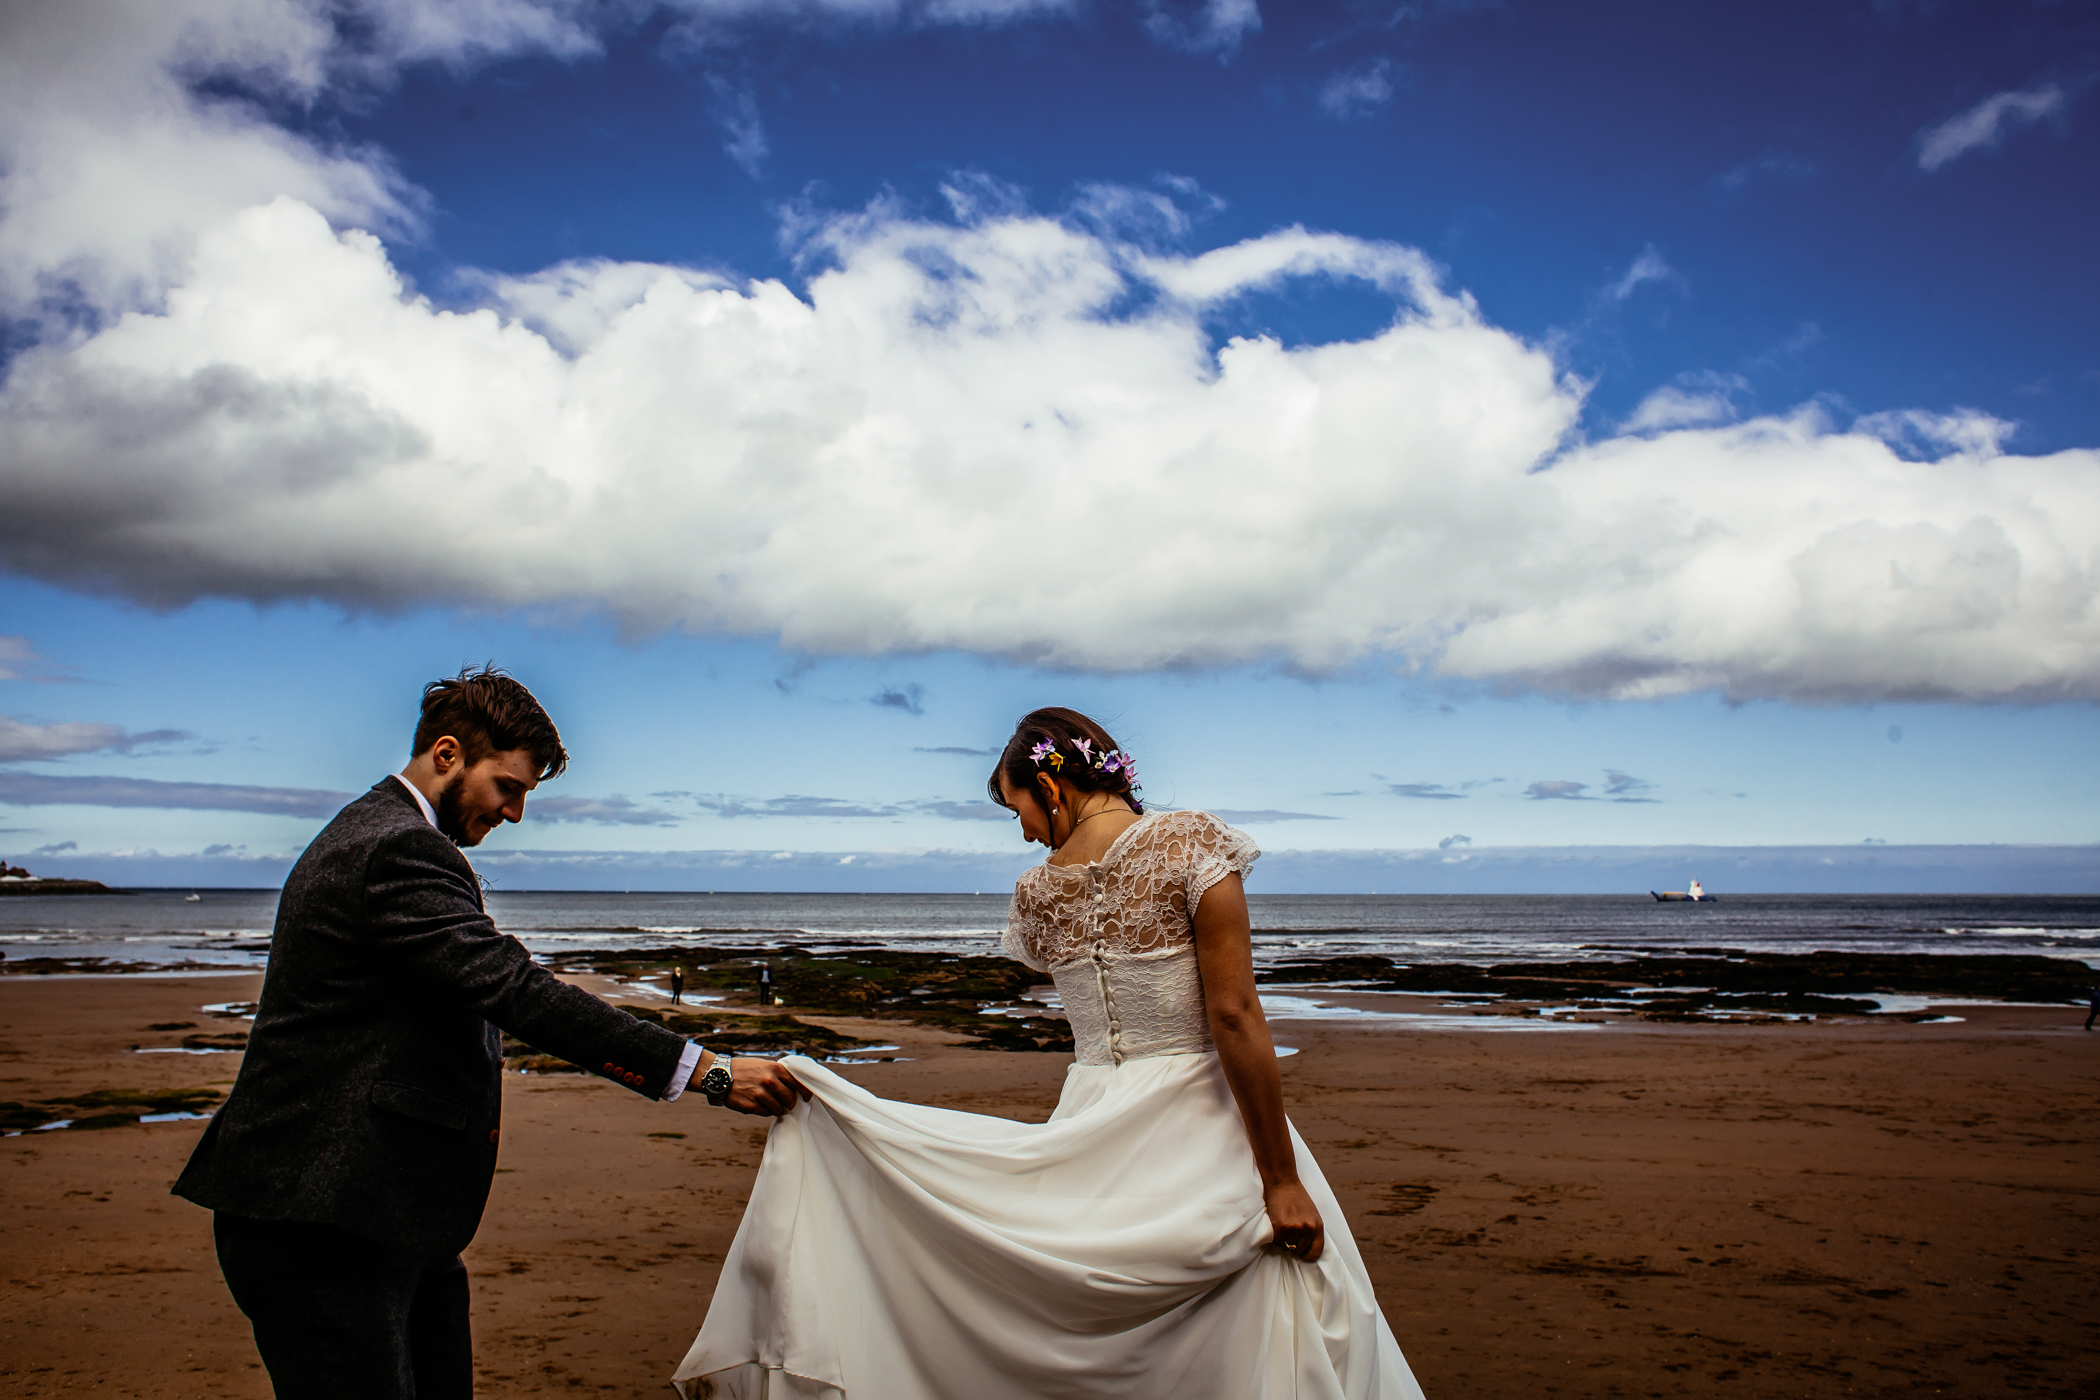 sansom photography beach wedding photography charlotte & mike-111-2